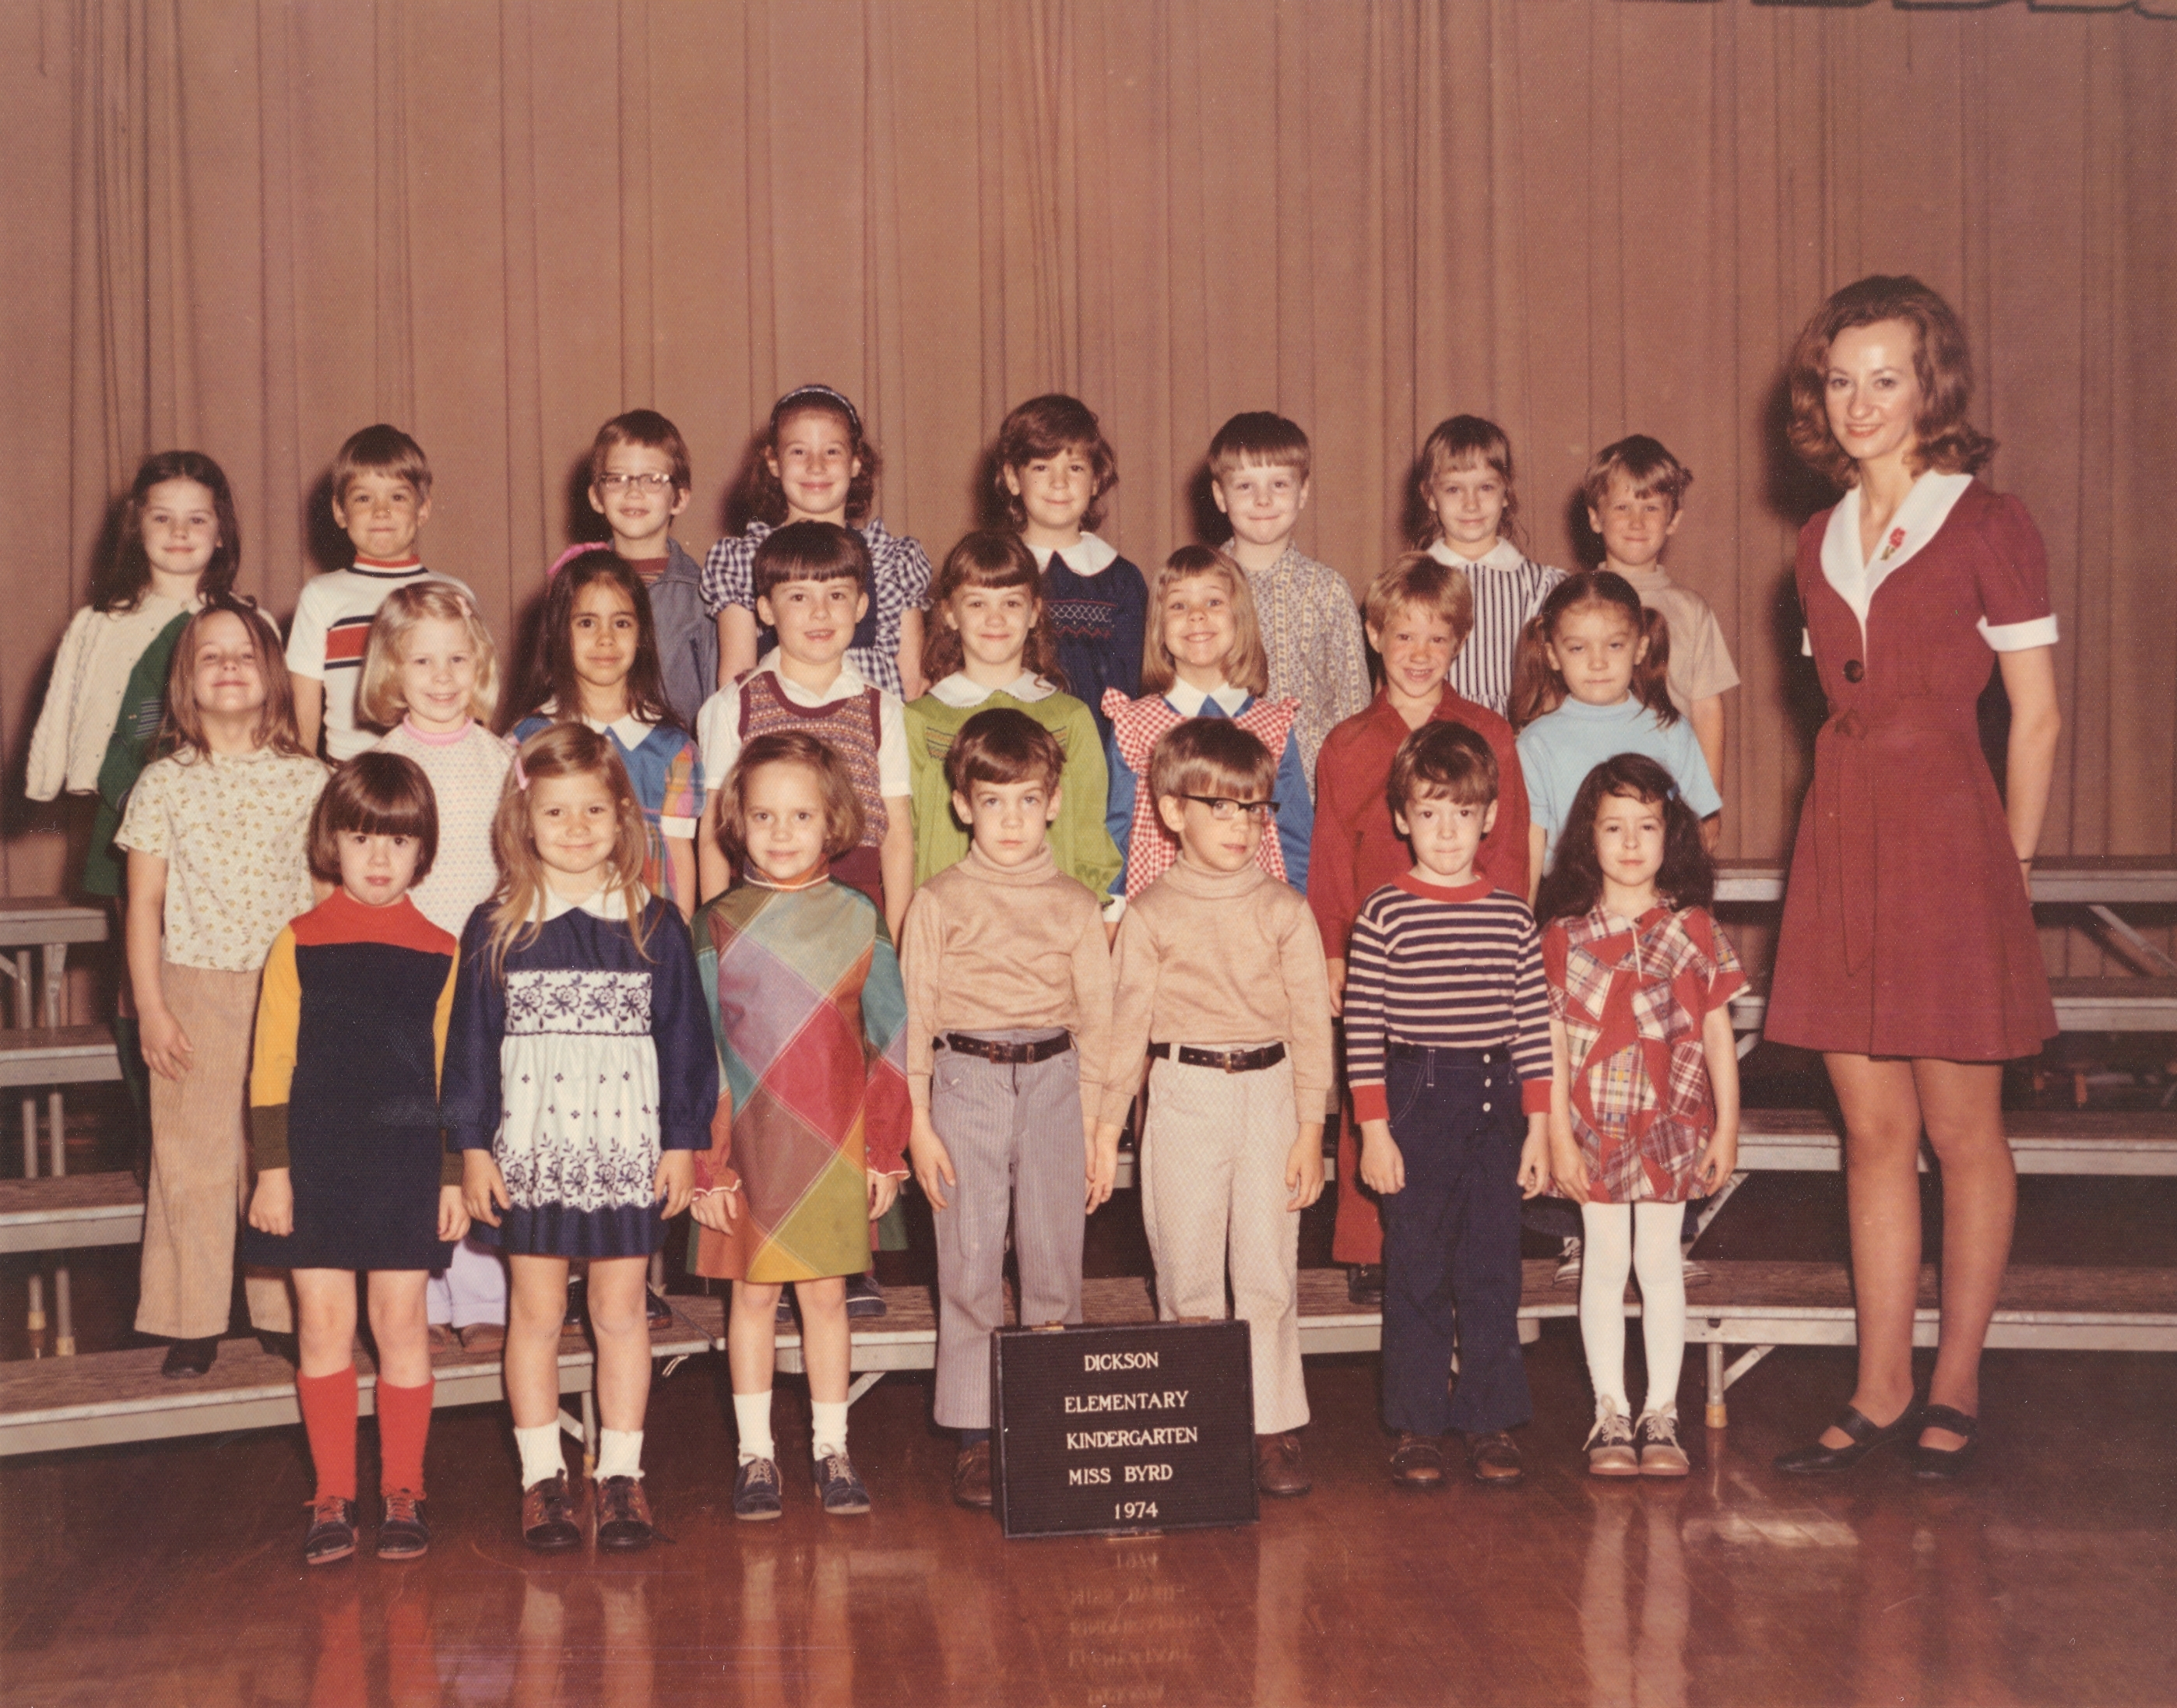 dickson elementary school kingsport tennessee classes 1974 grade